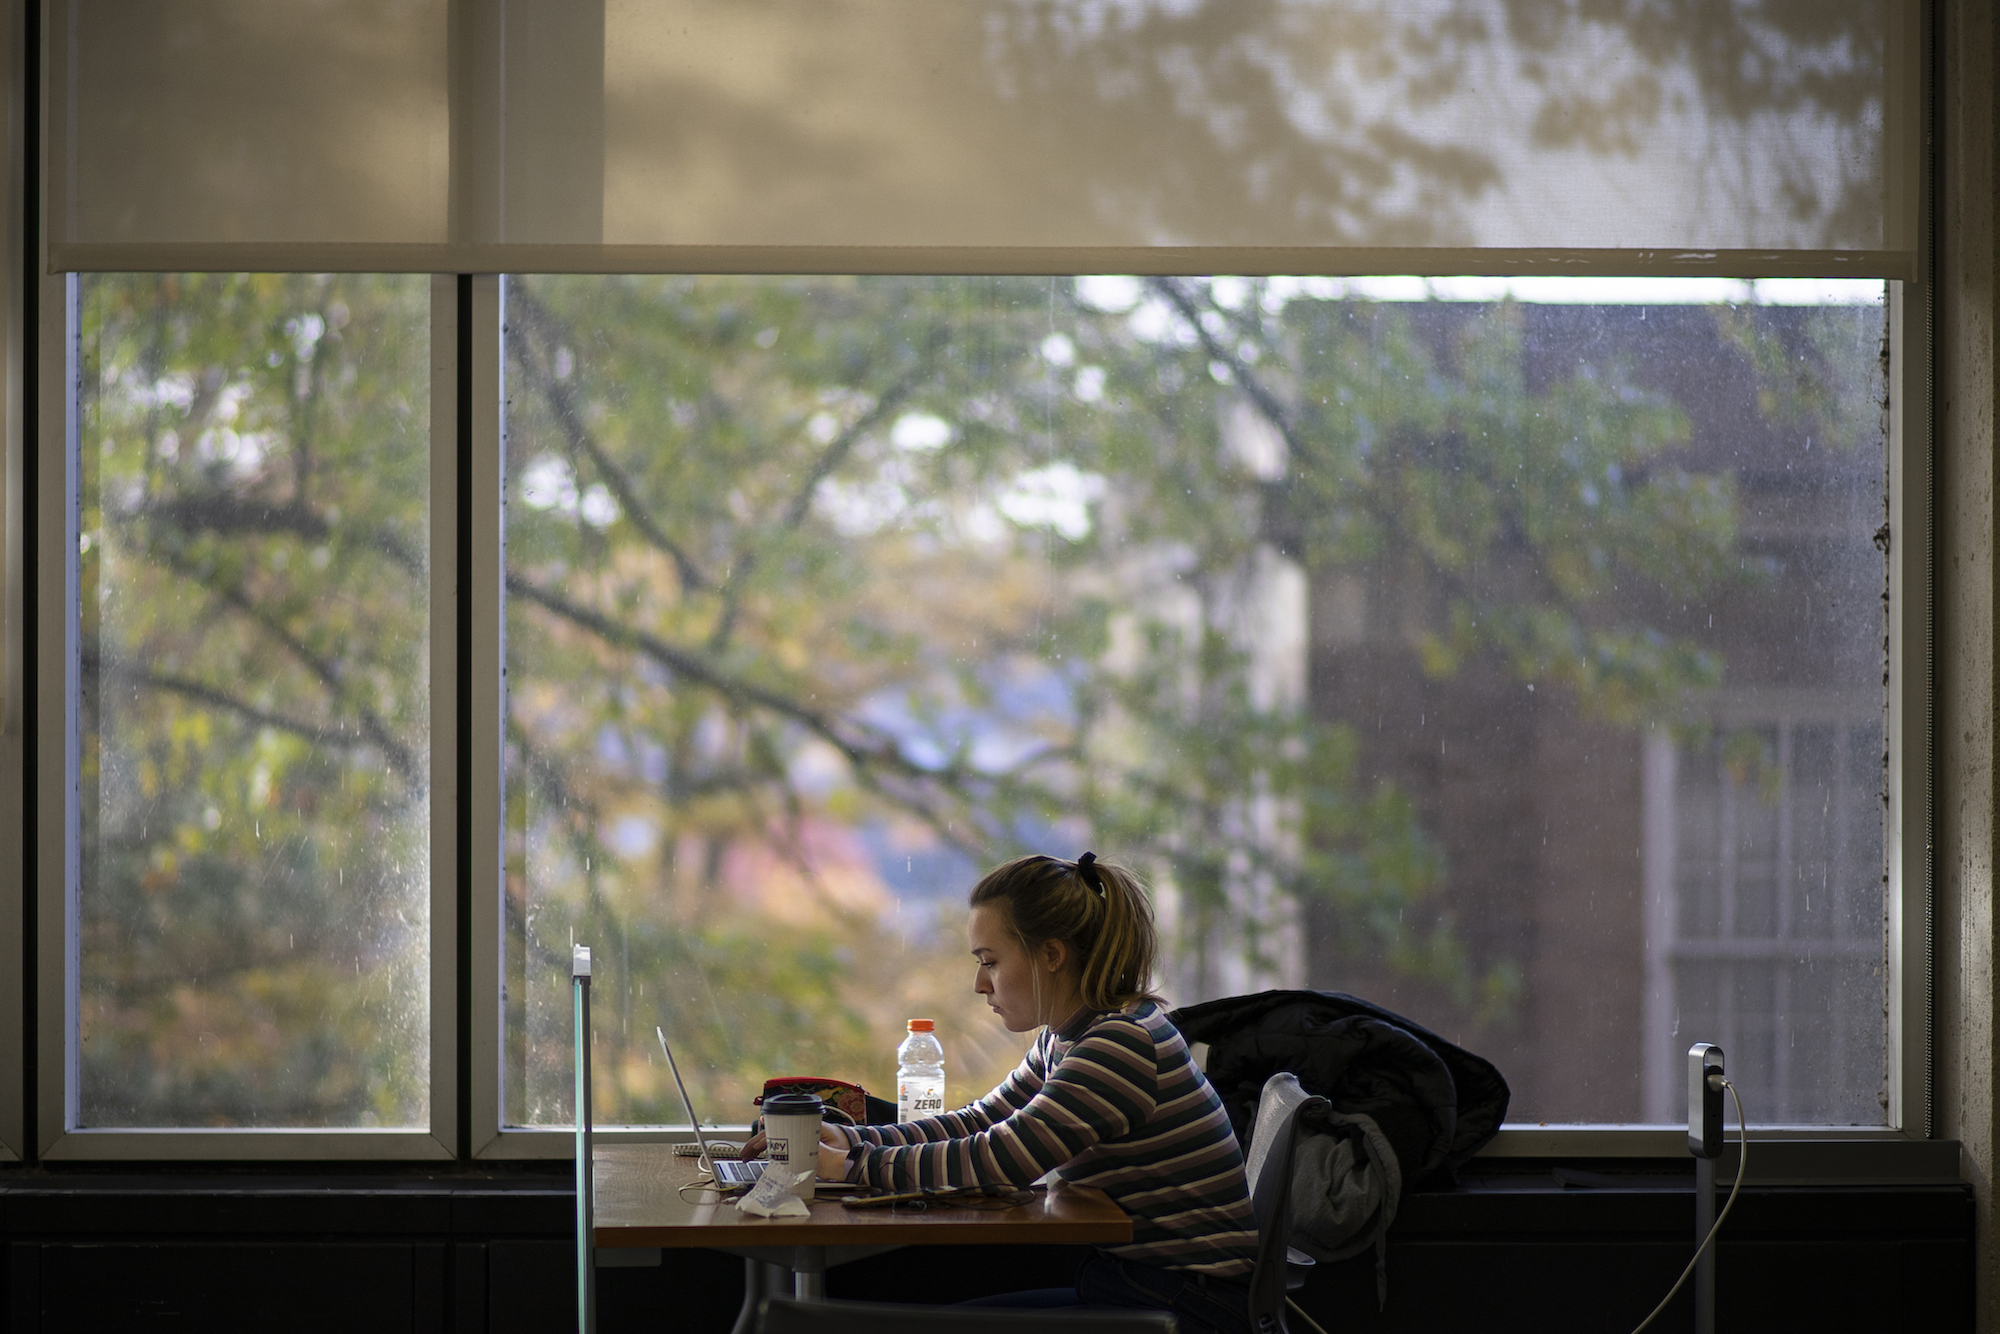 Student Studying at Library